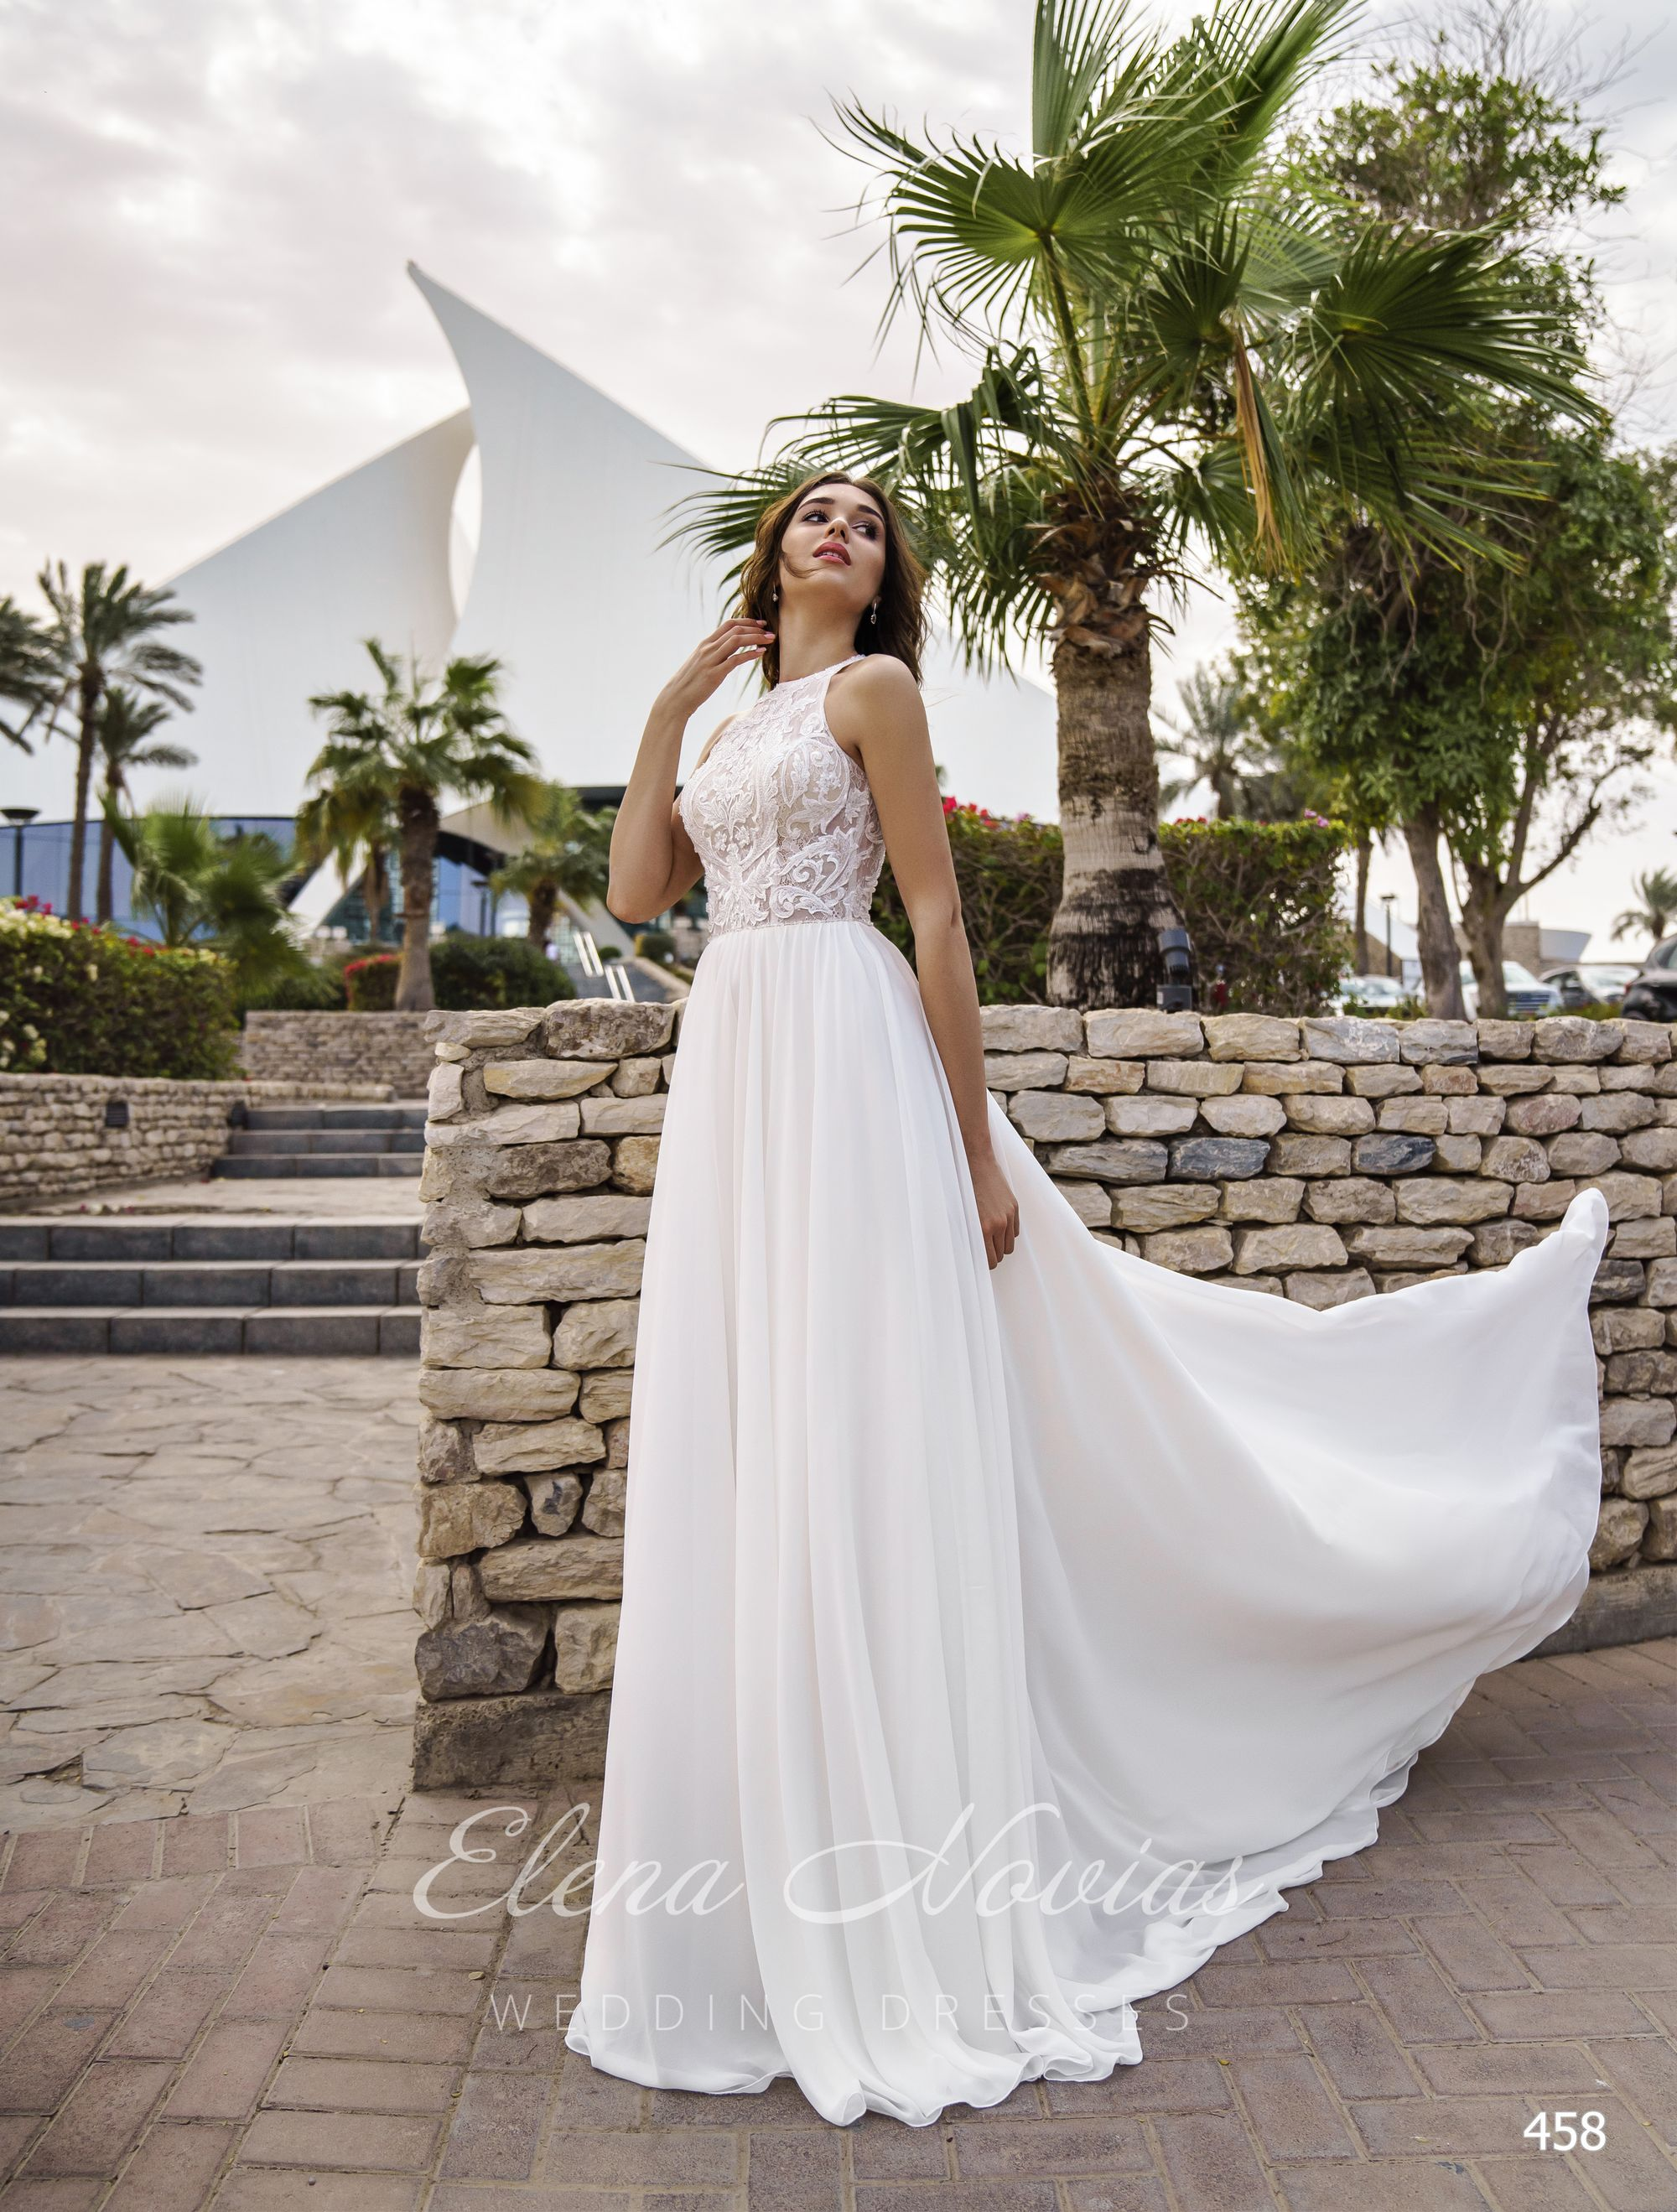 Wedding dresses 458 1